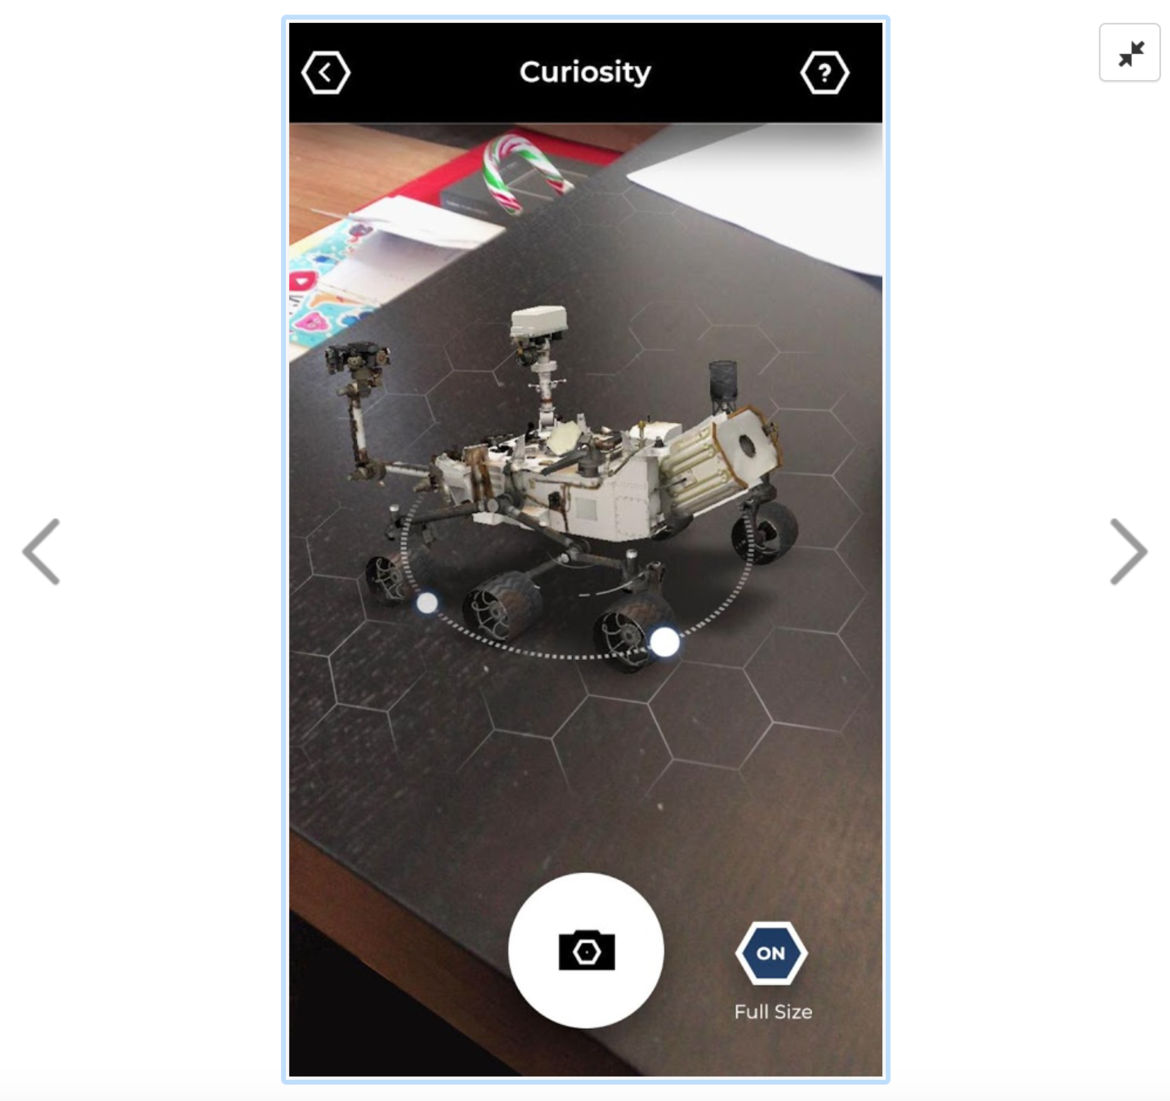 NASA/Google Spacecraft AR augmented reality app